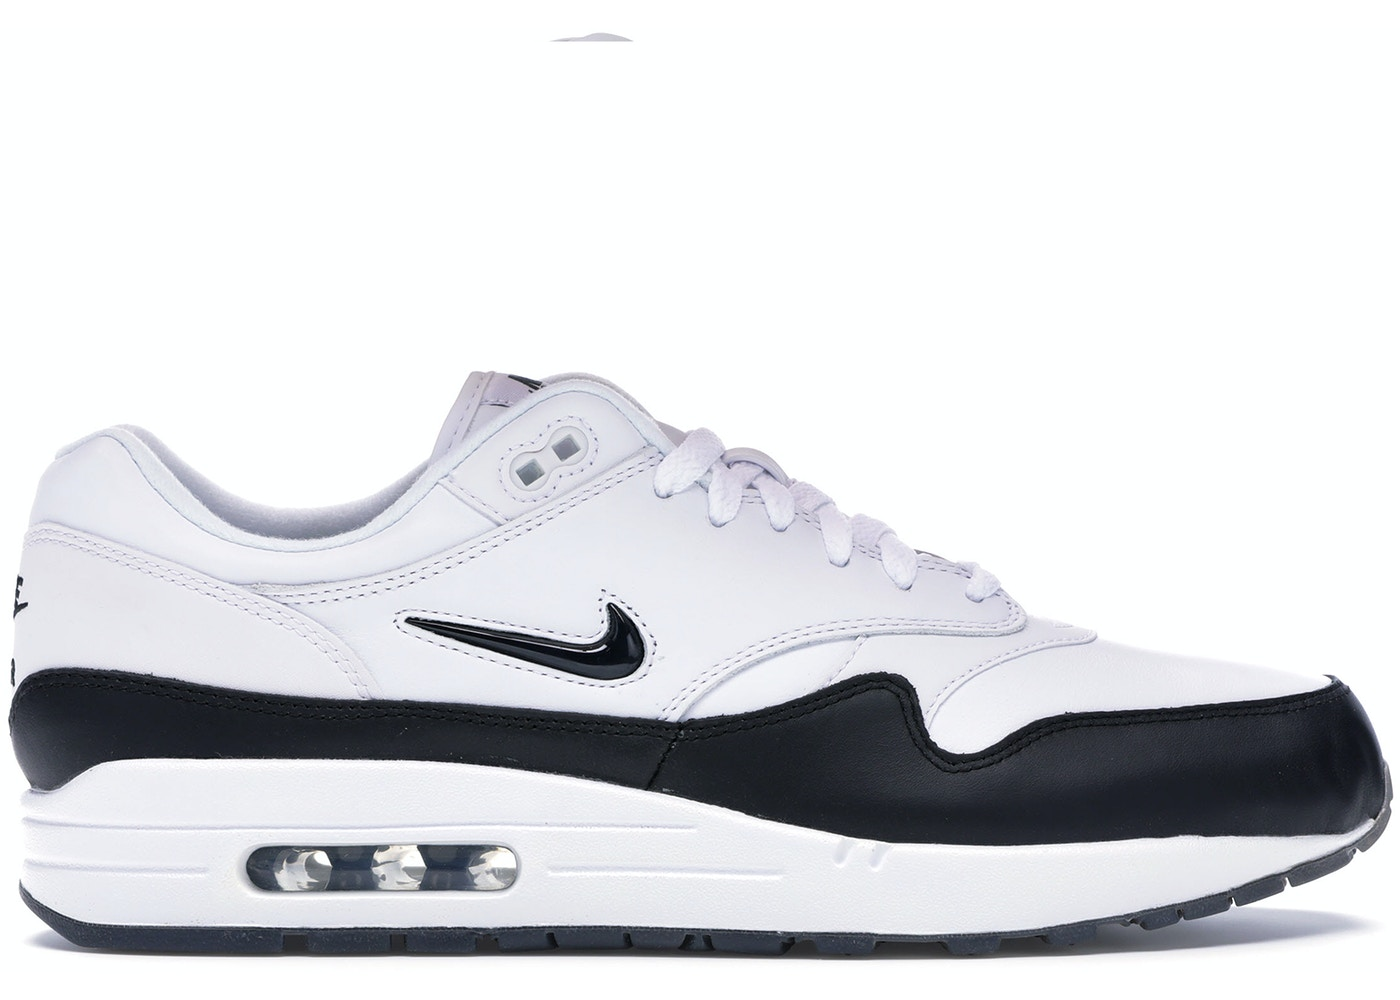 cheap for discount c70f5 f9931 Air Max 1 Jewel White Black (2017) - 918354-100